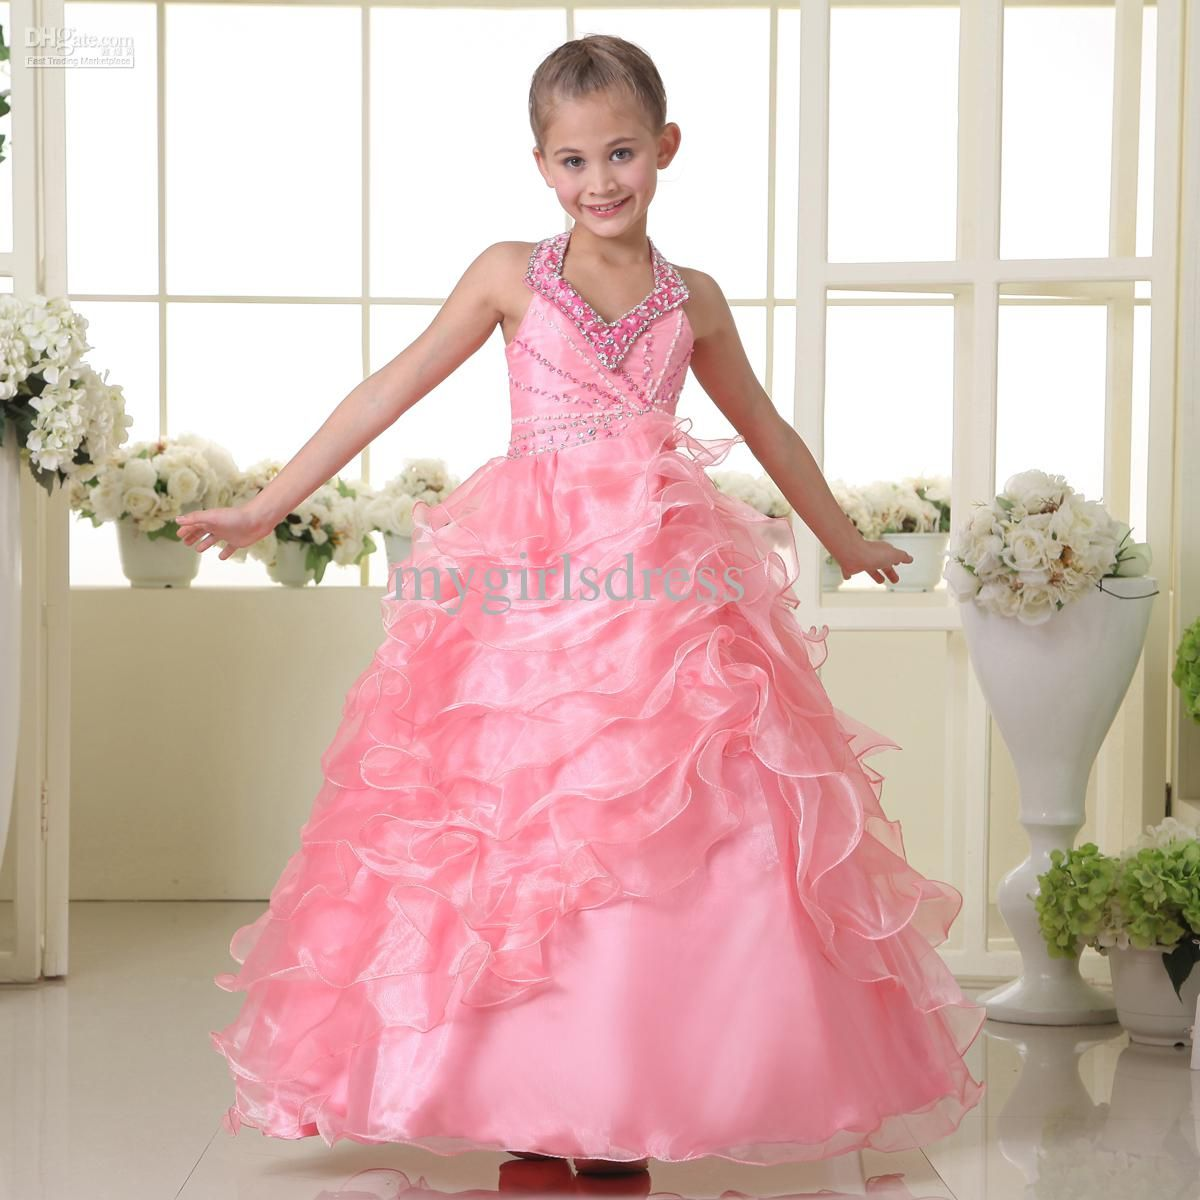 Jcpenney junior holiday dresses boutique prom dresses holiday jcpenney junior holiday dresses boutique prom dresses ombrellifo Images